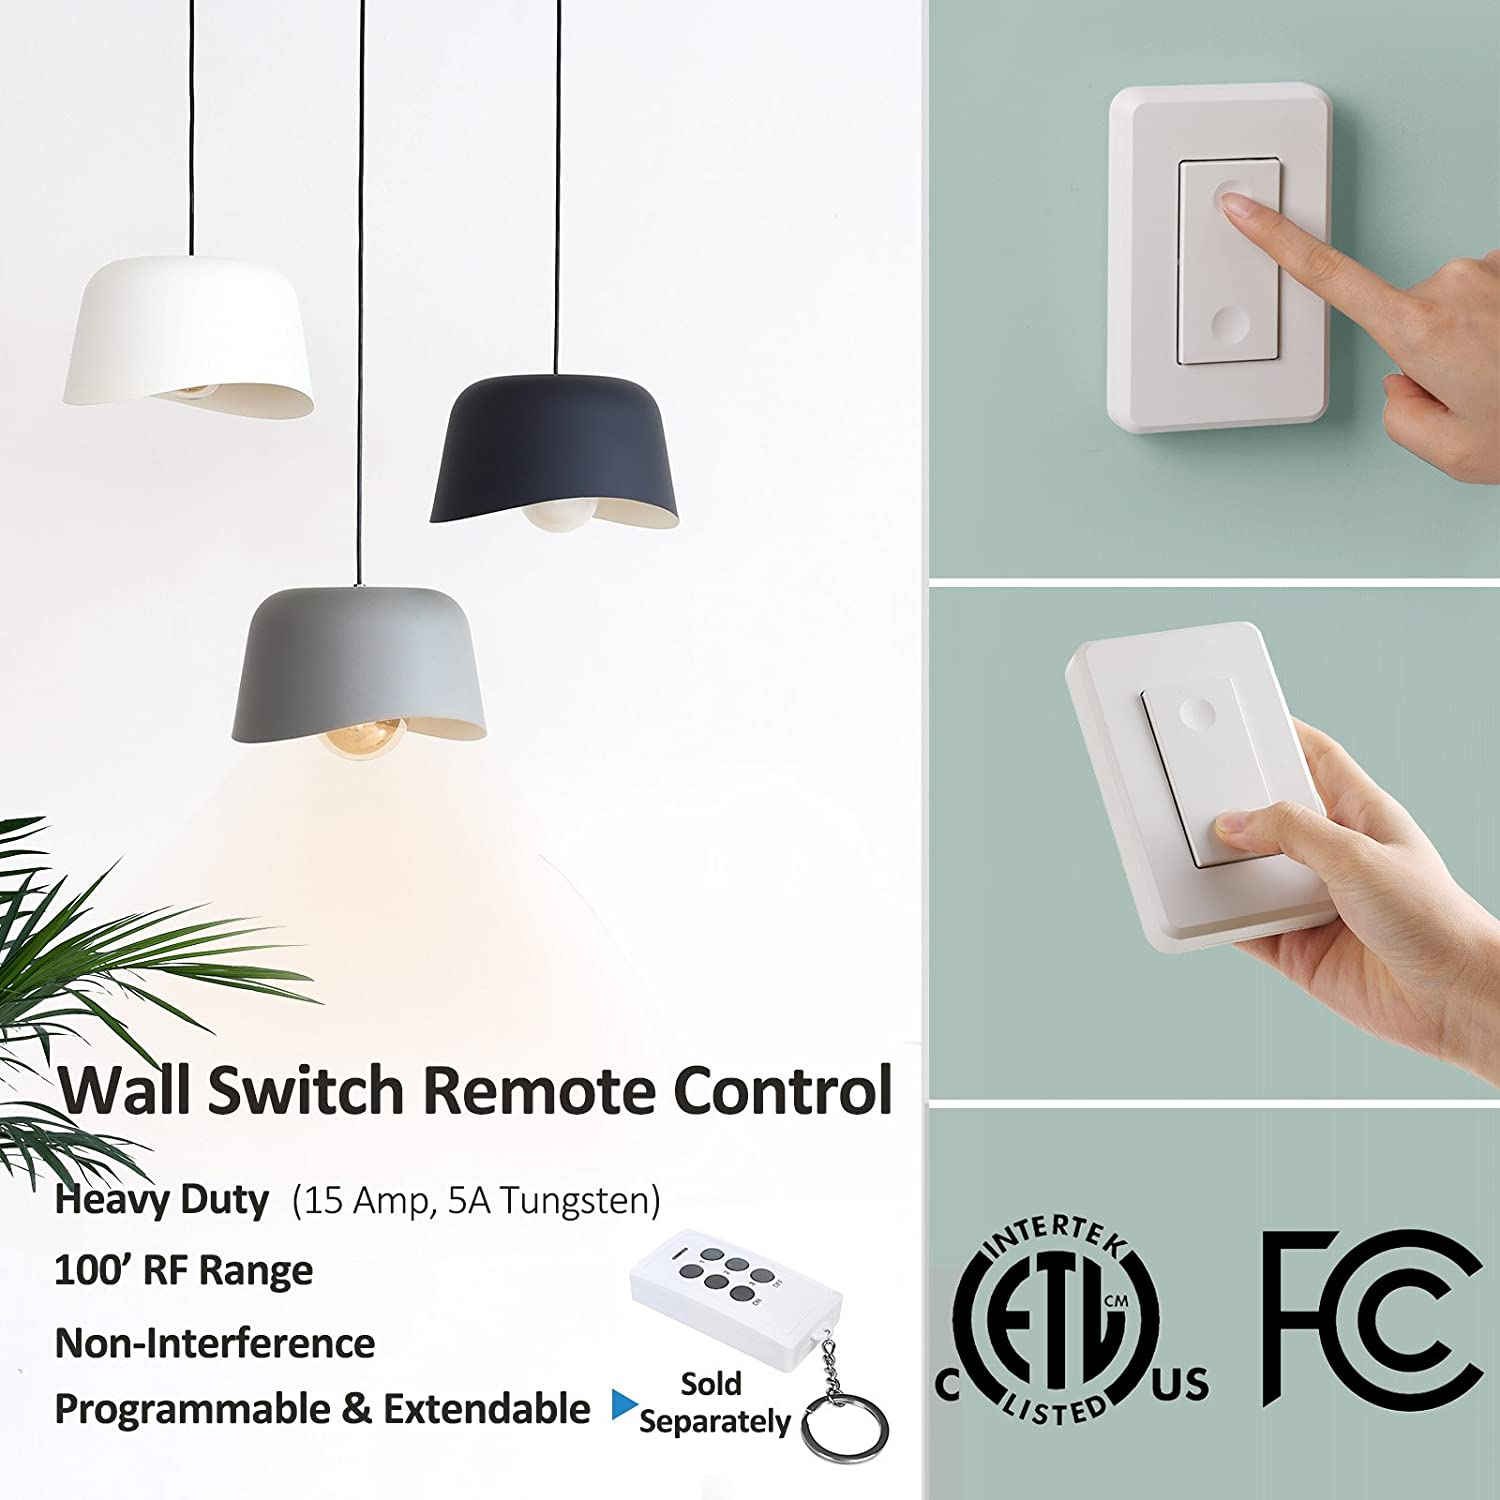 Dewenwils Wireless Wall Switch Remote Control Outlet Electrical Fan Light Pull Cord On Off For Lamp No Interference 15 Amp Heavy Duty 100 Rf Range